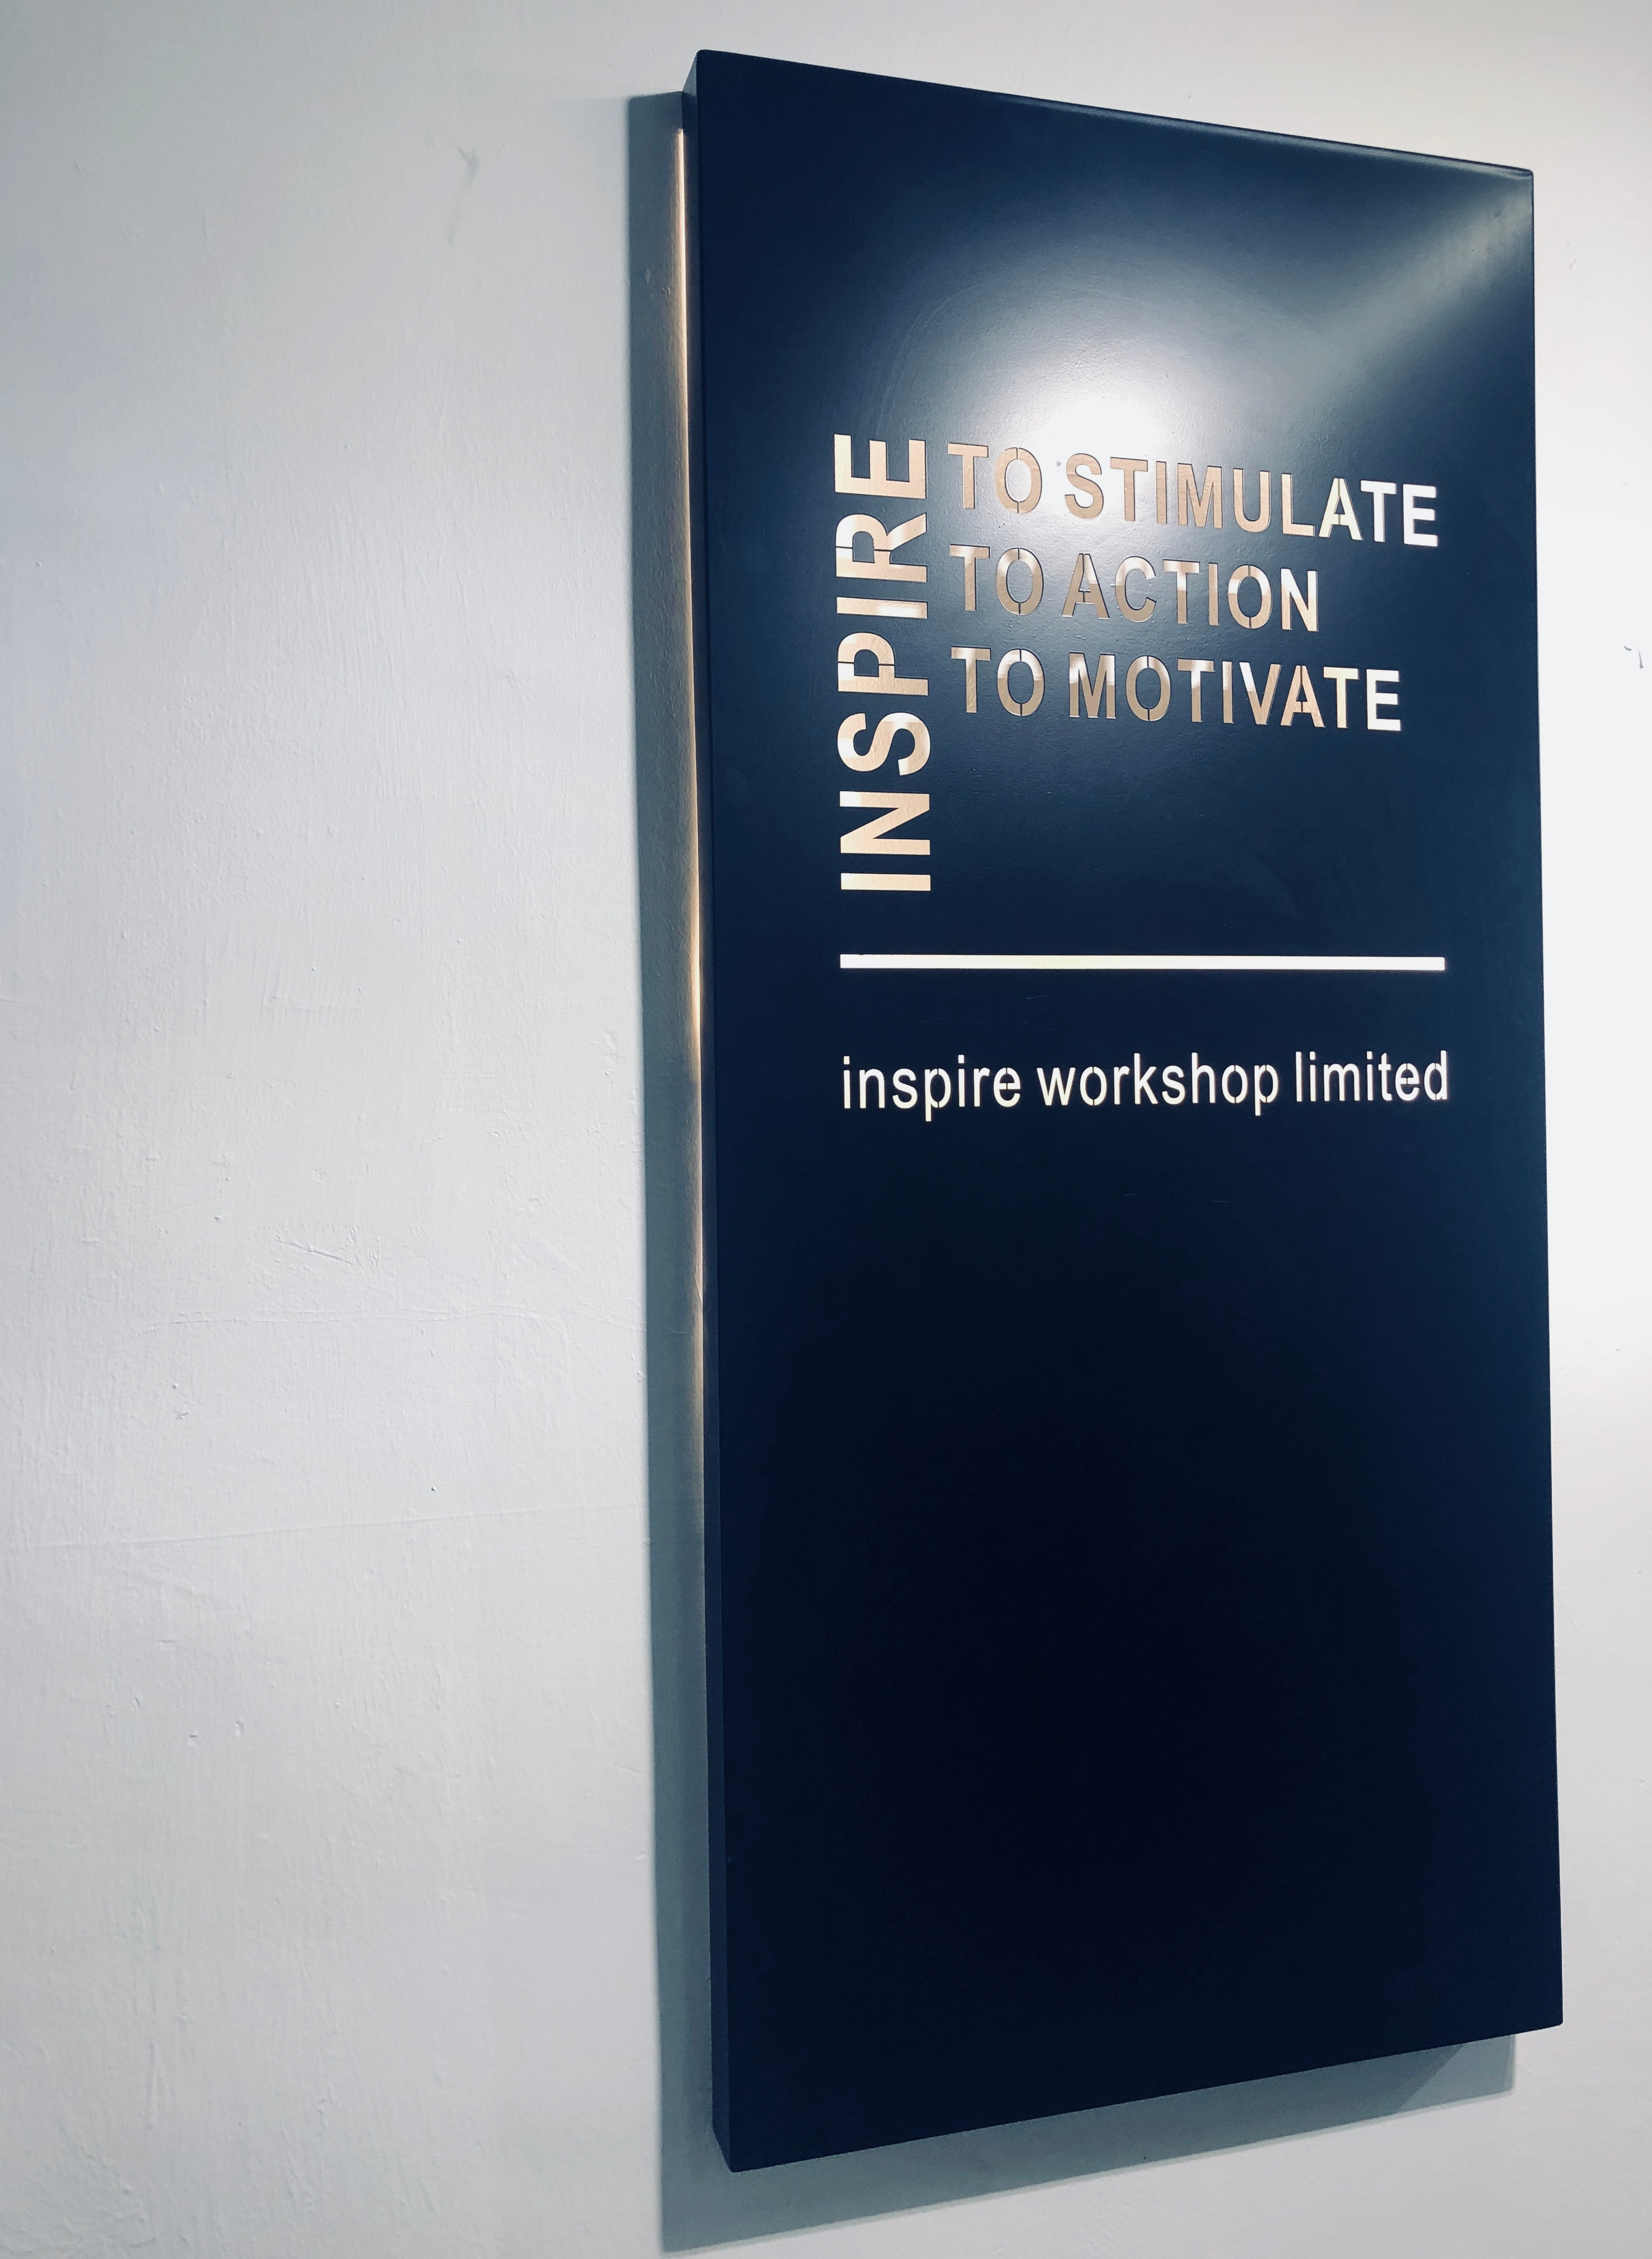 Appointment -INSPIRE HK OFFICE